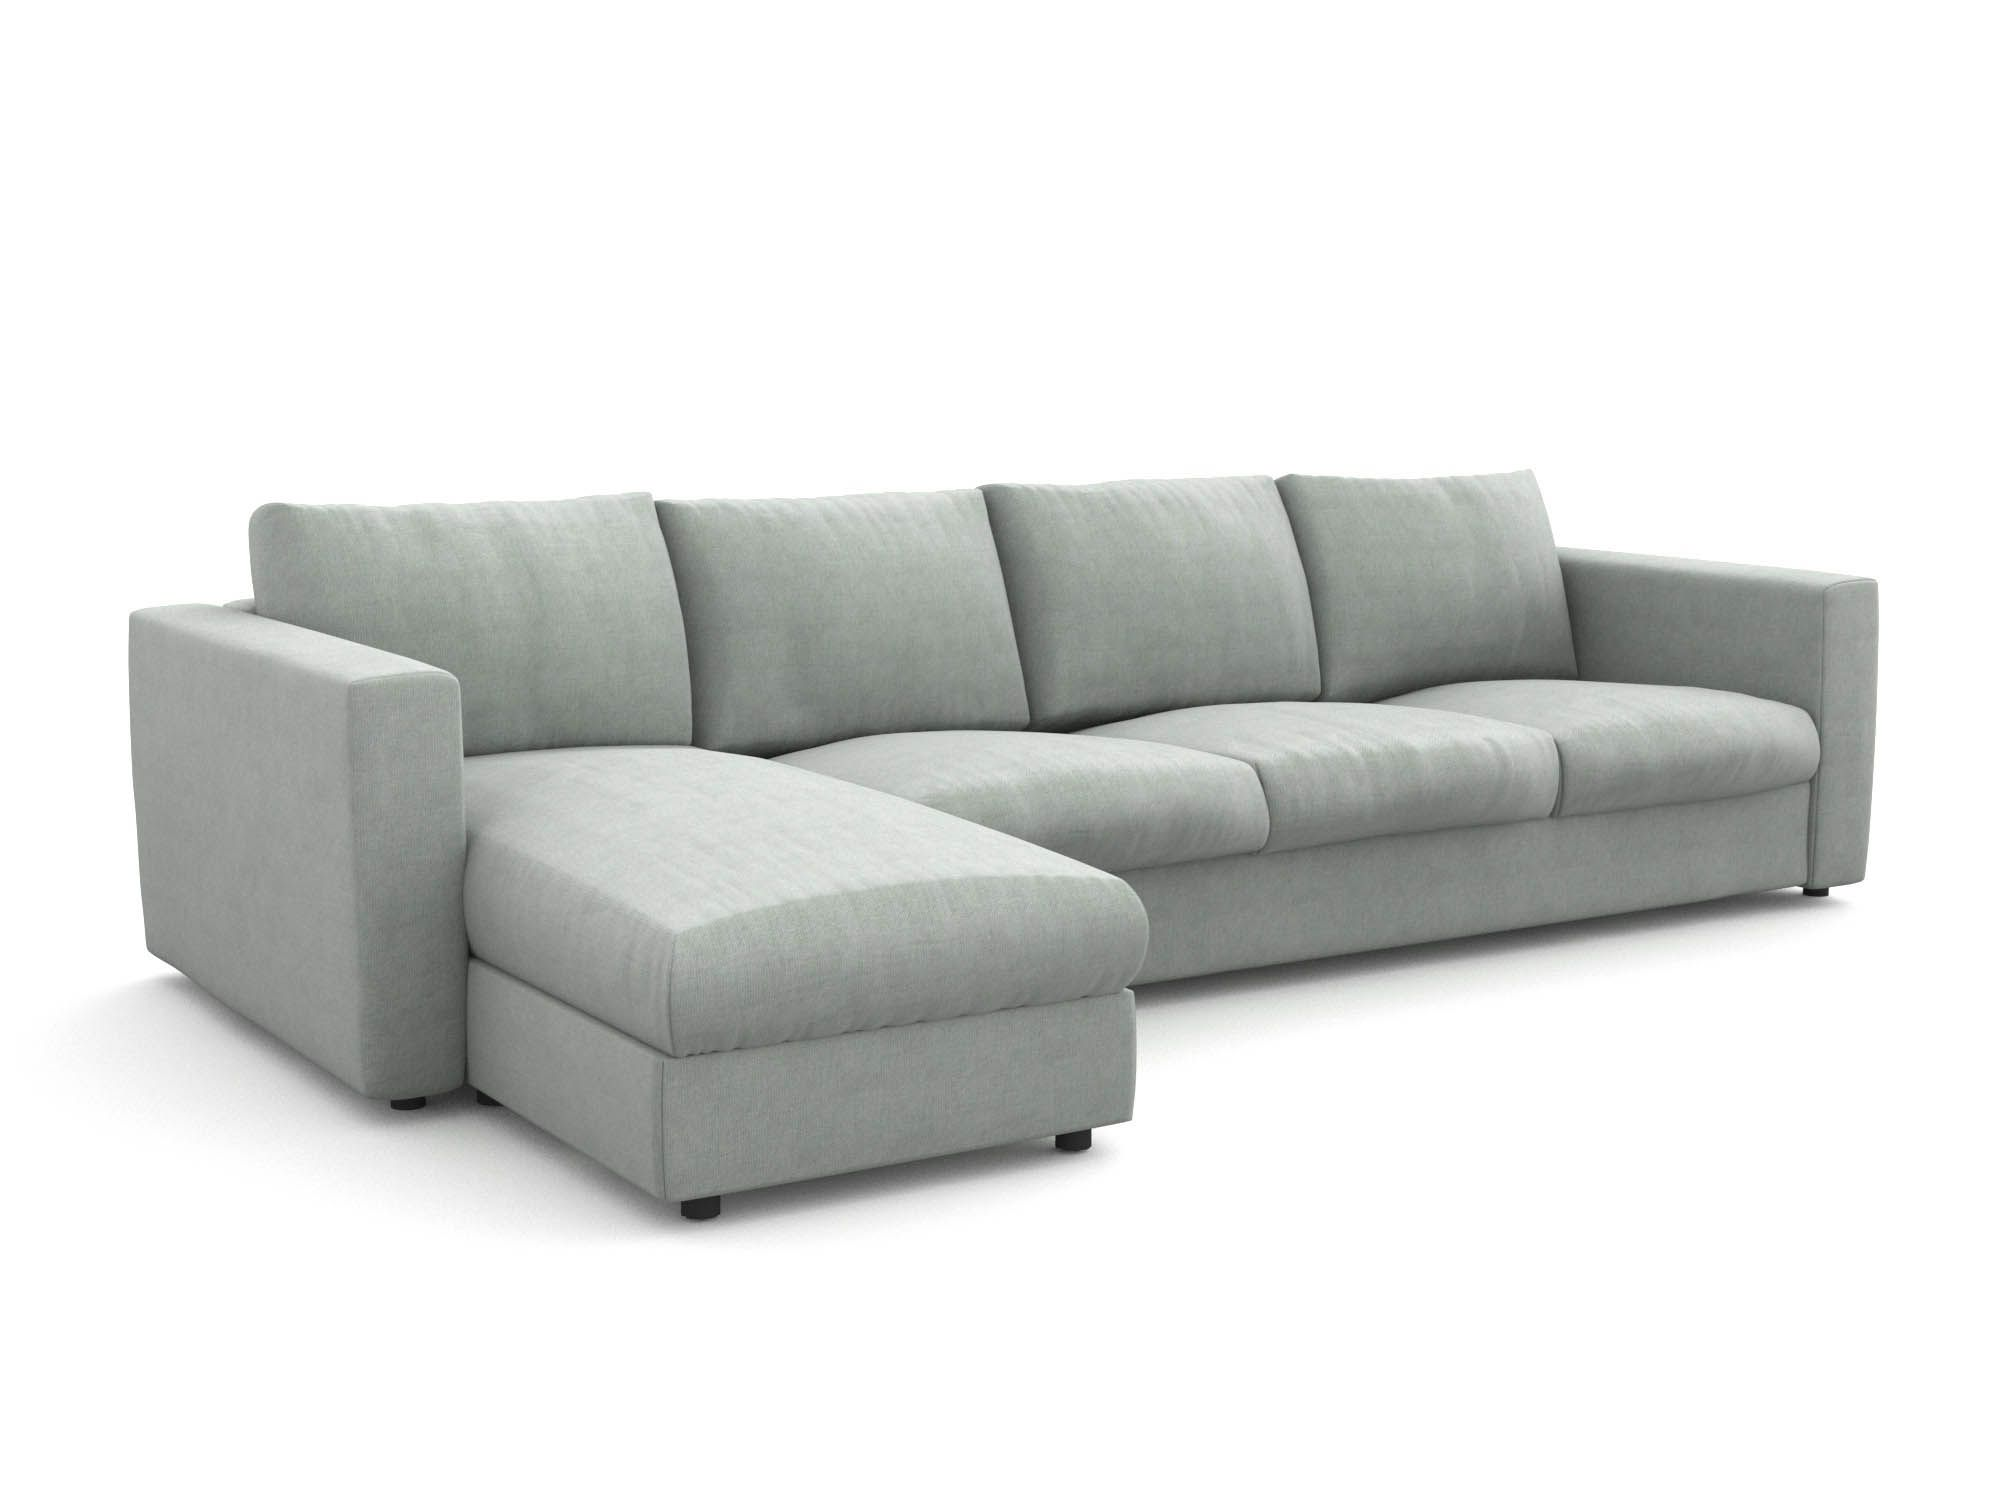 Sofa 2 Sitzer Ikea Vimle | Ikea Furniture | Vidian-design.com